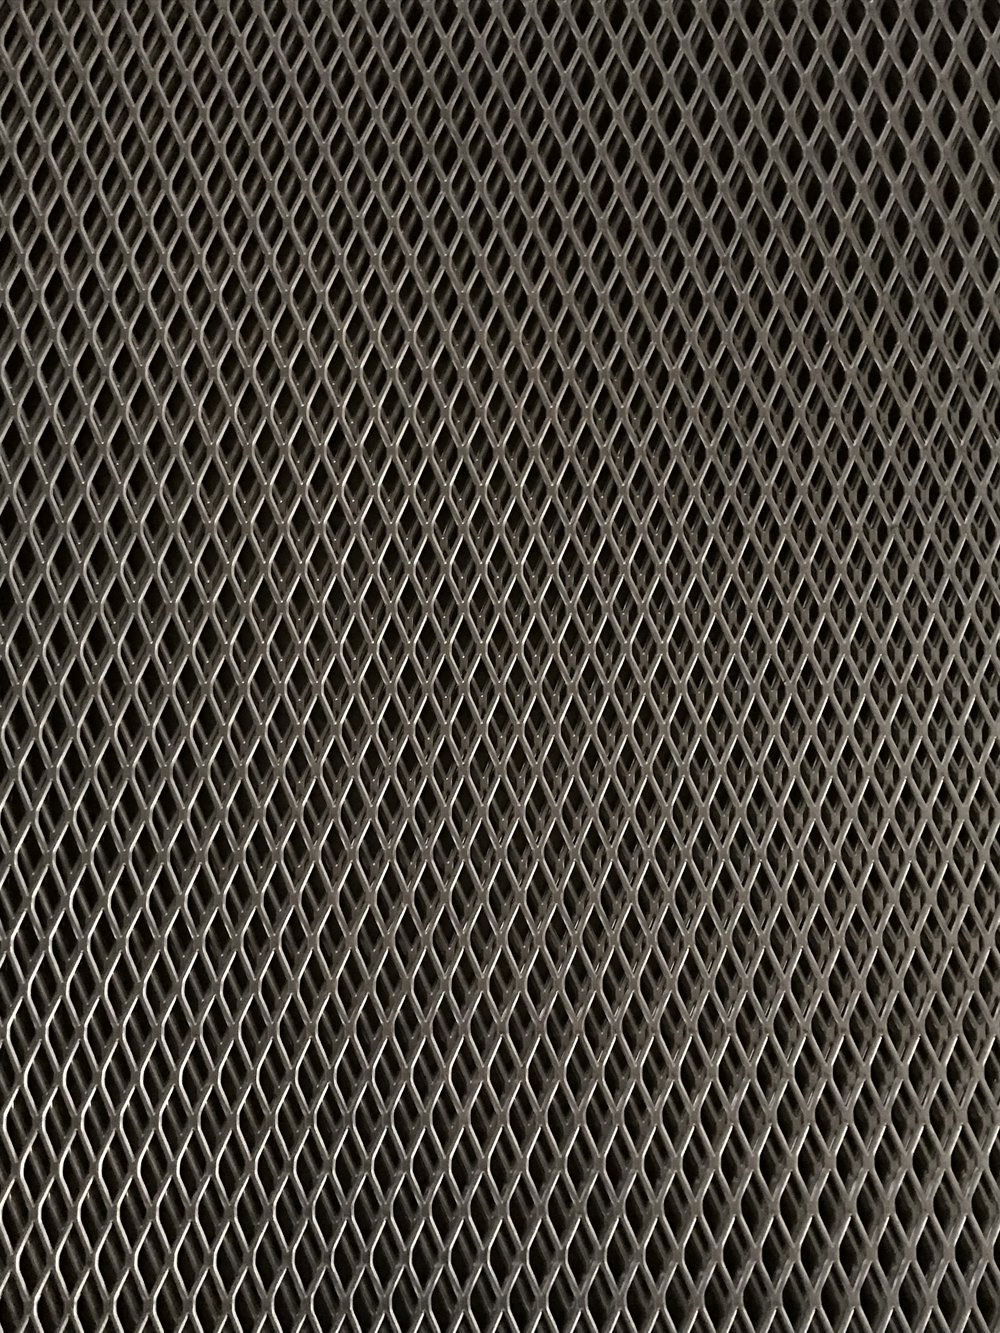 Flat Expanded Metal